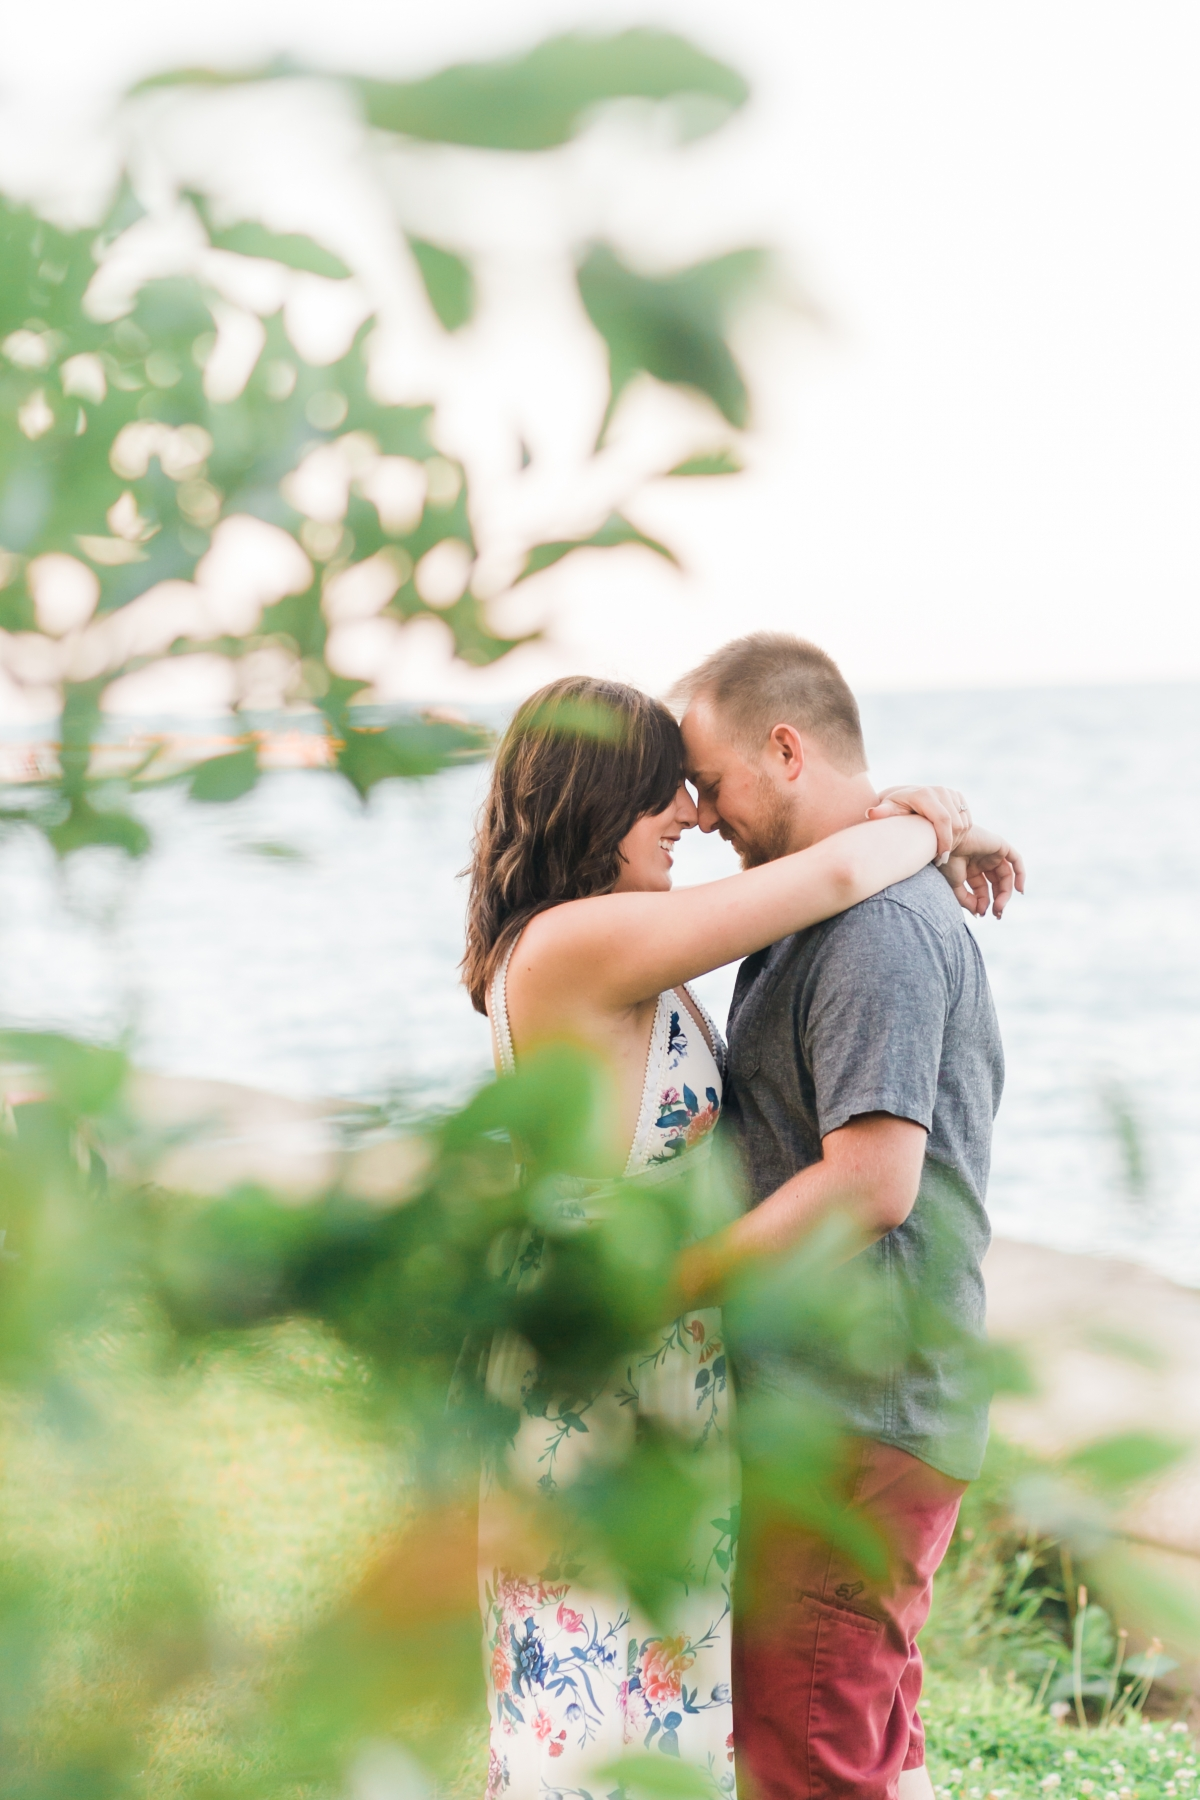 Classic Summer Engagement Session at North Ave Beach